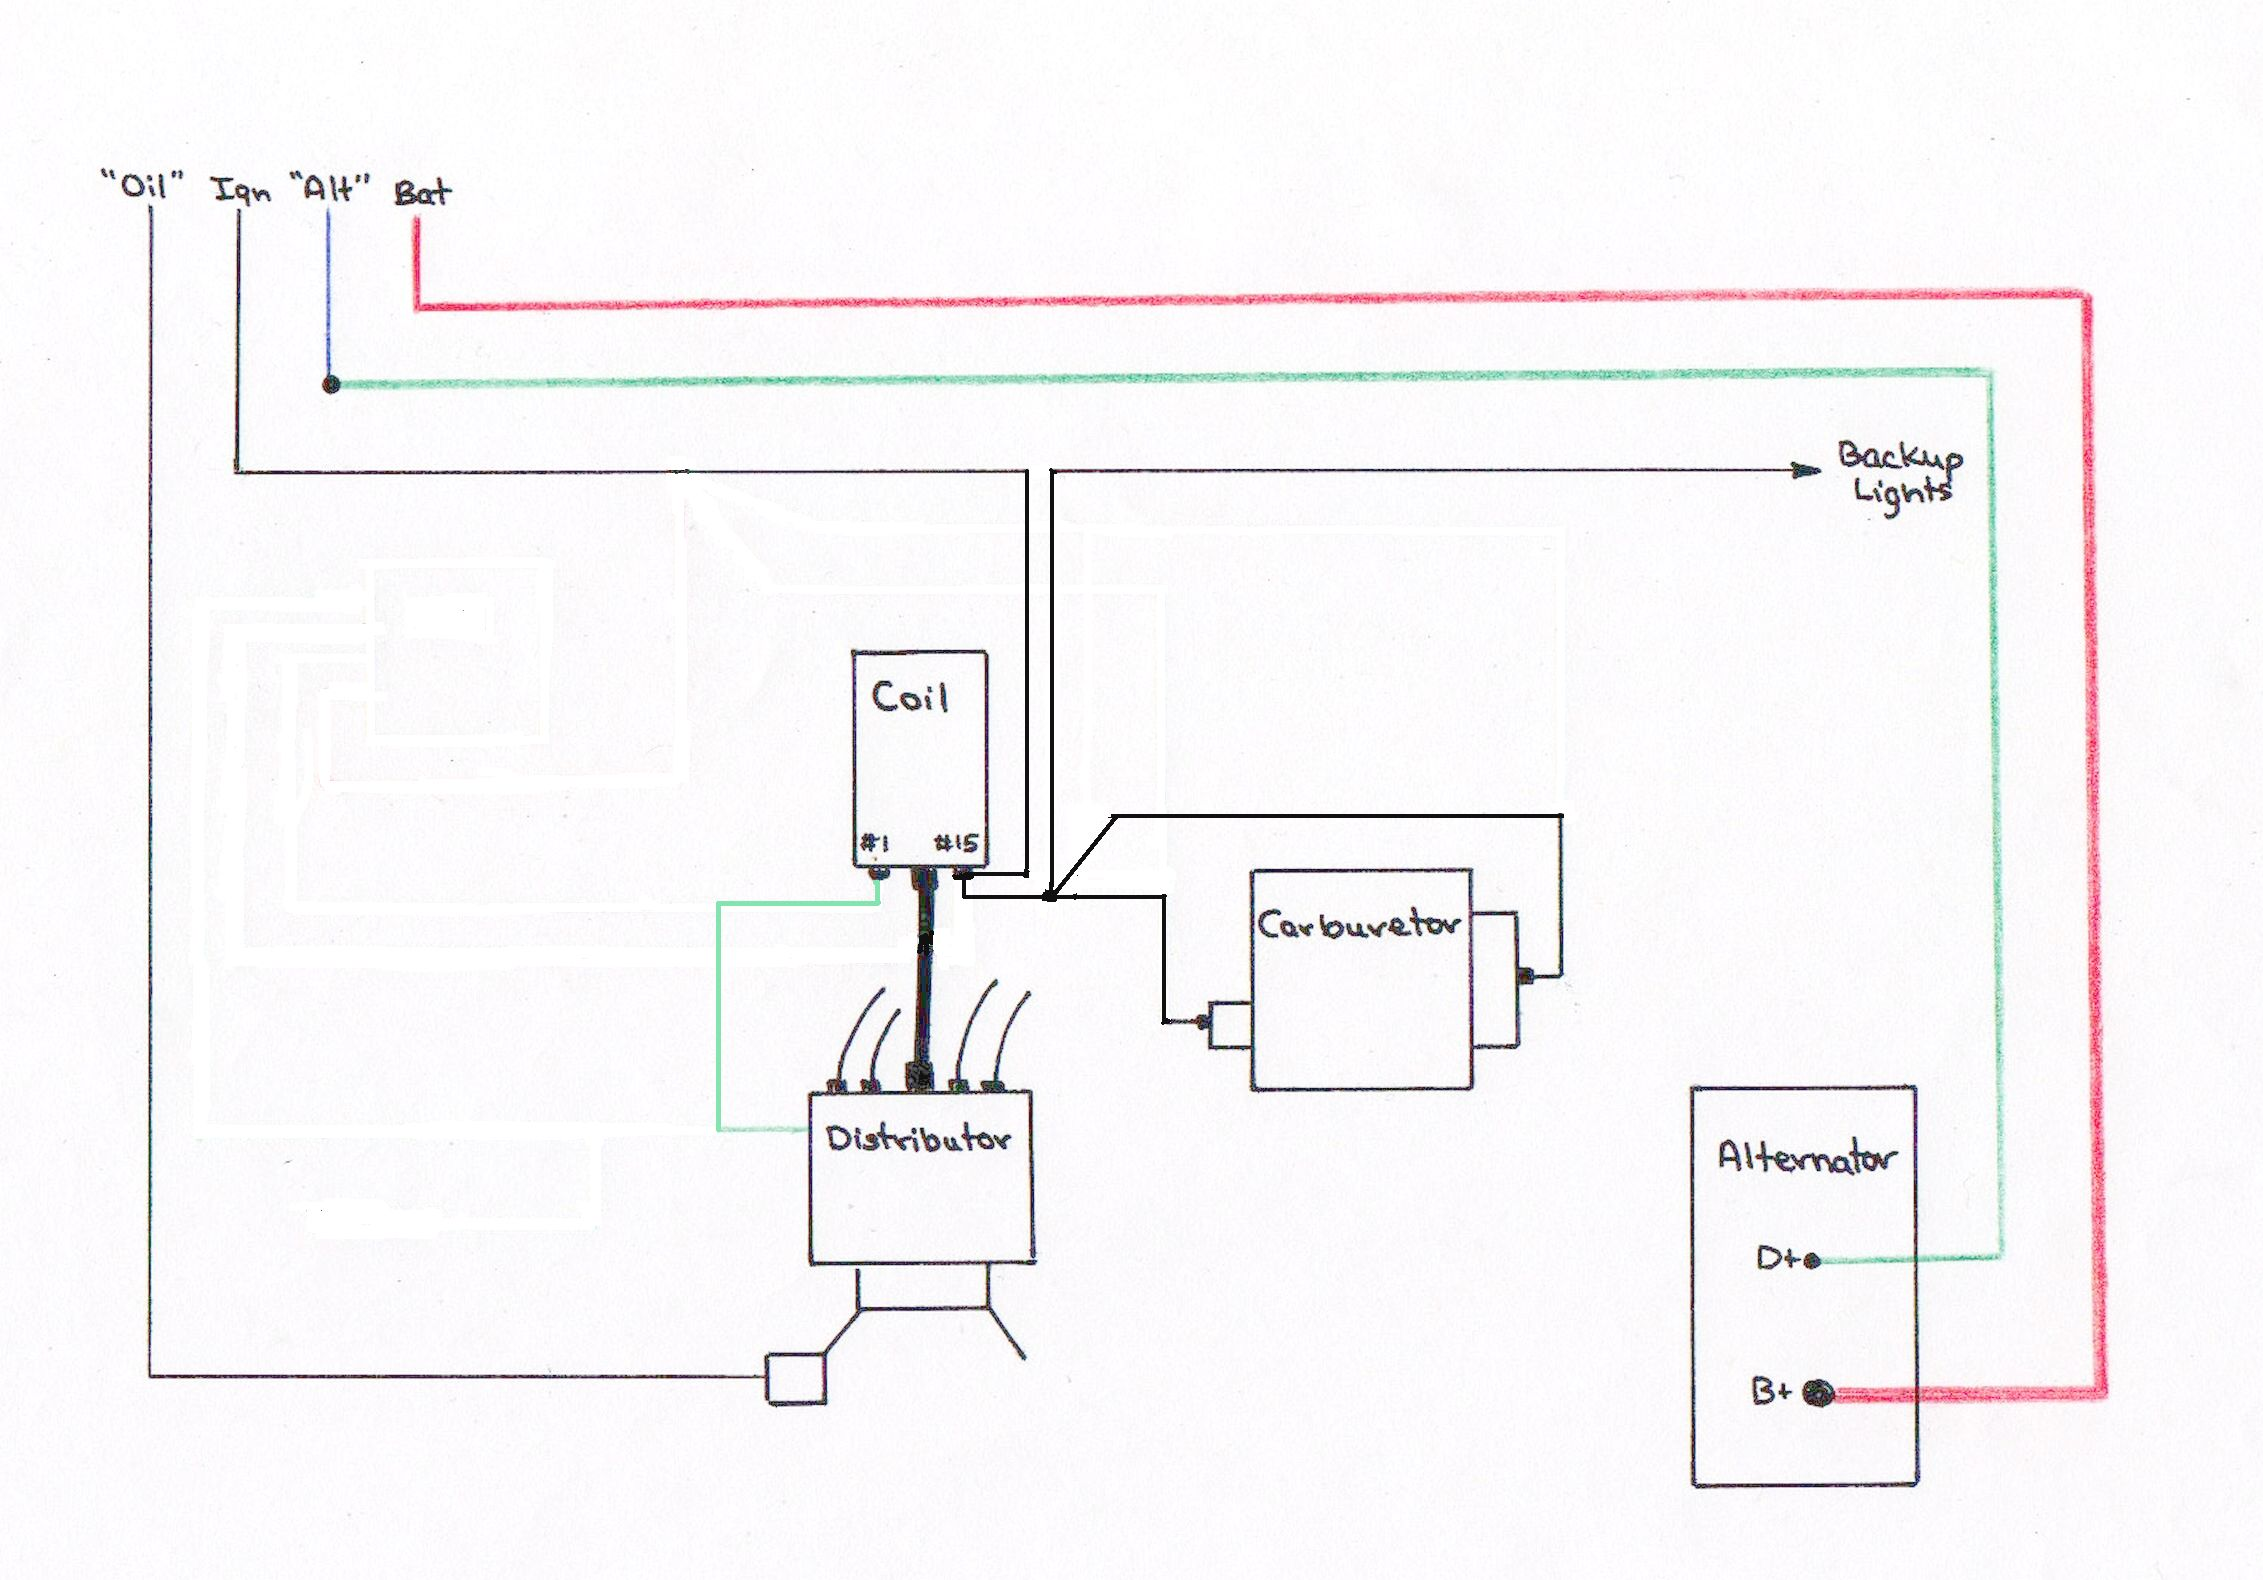 handdrawn_schematic alternator wiring vw ignition switch wiring diagram at sewacar.co